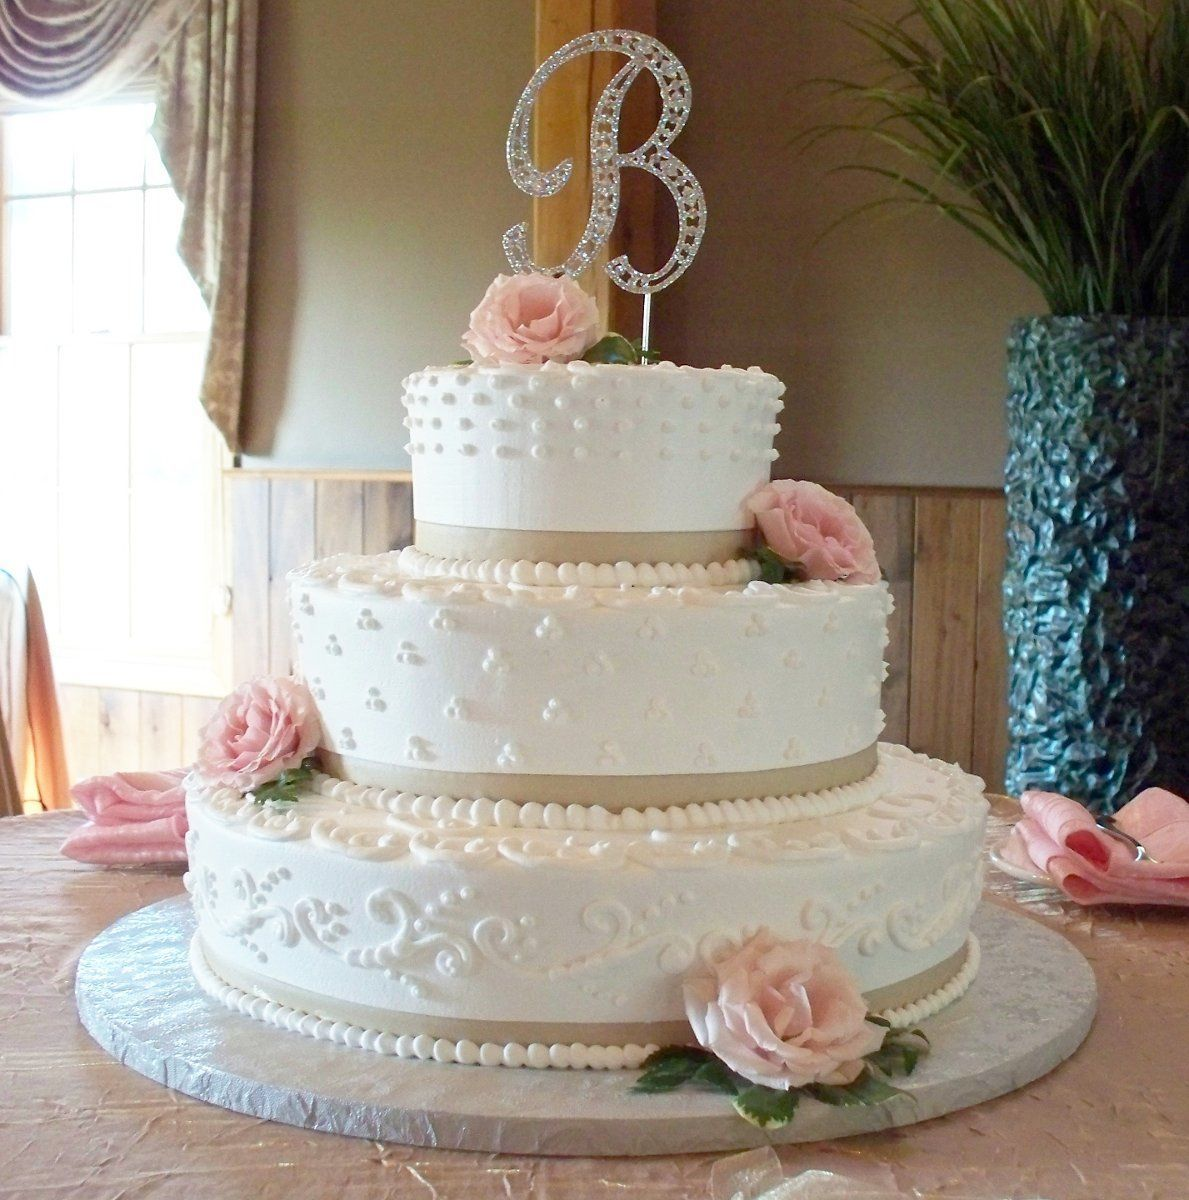 cakes for all occasions wedding cake massachusetts boston